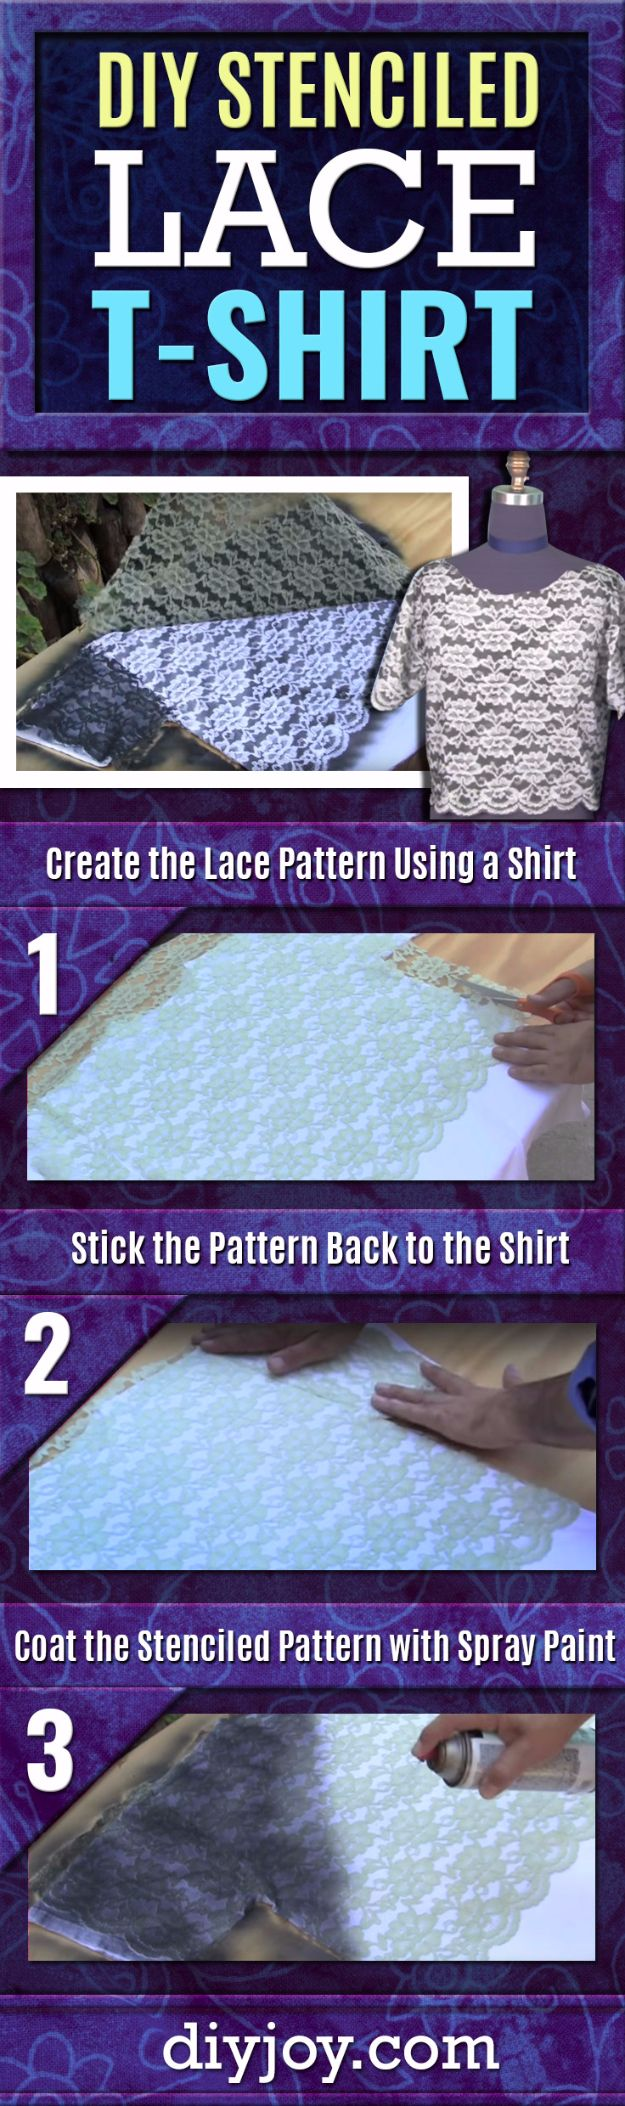 Spray Painting Tips and Tricks - DIY Stenciled Lace T-Shirt - Home Improvement Ideas and Tutorials for Spray Painting Furniture, House, Doors, Trim, Windows and Walls - Step by Step Tutorials and Best How To Instructions - DIY Projects and Crafts by DIY JOY http://diyjoy.com/spray-painting-tips-tricks